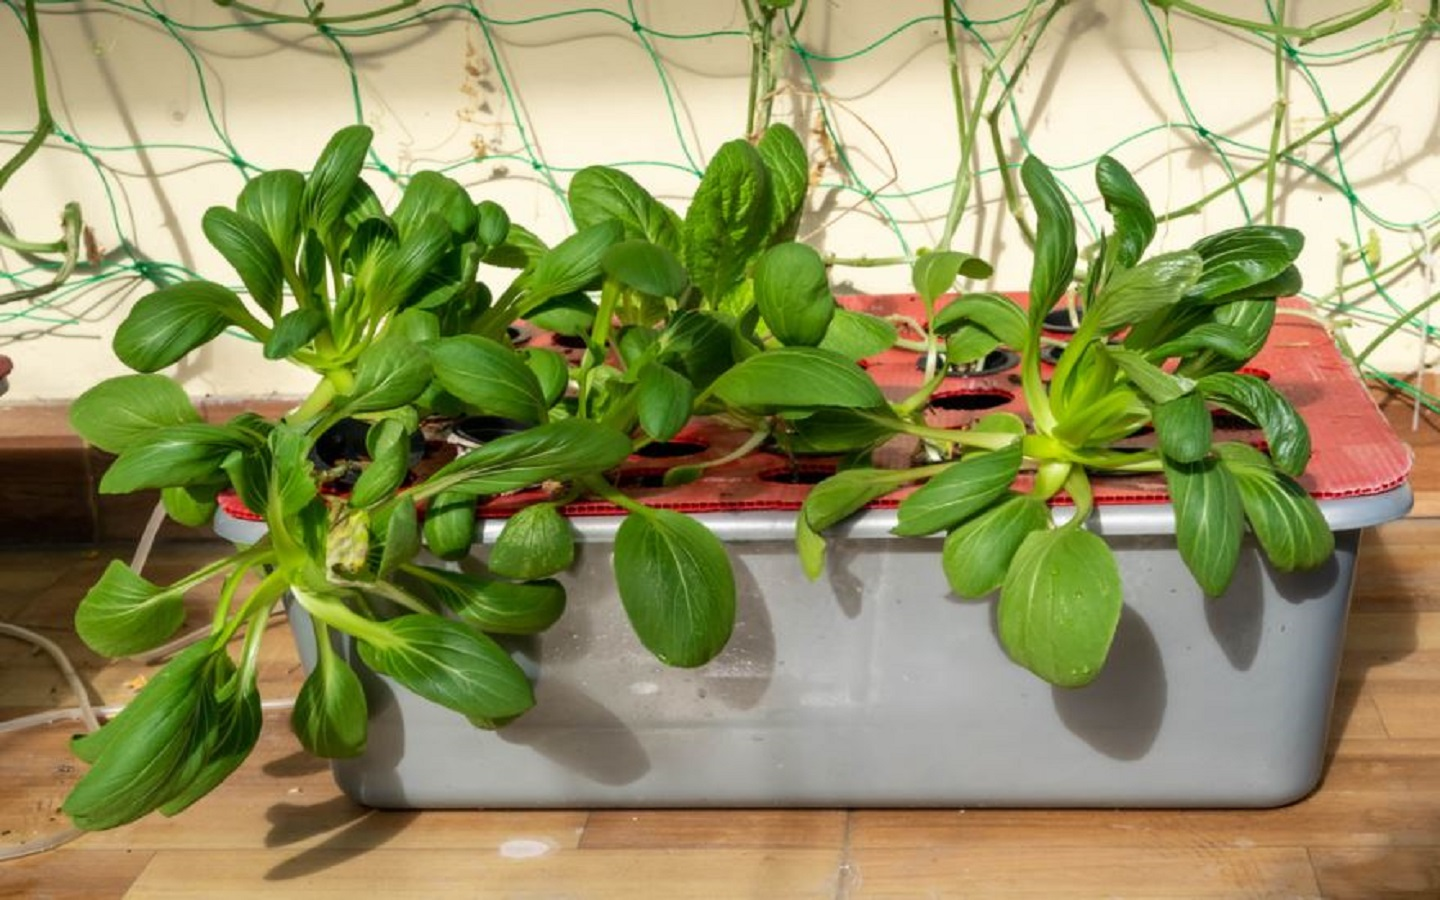 Hydroponic plant container